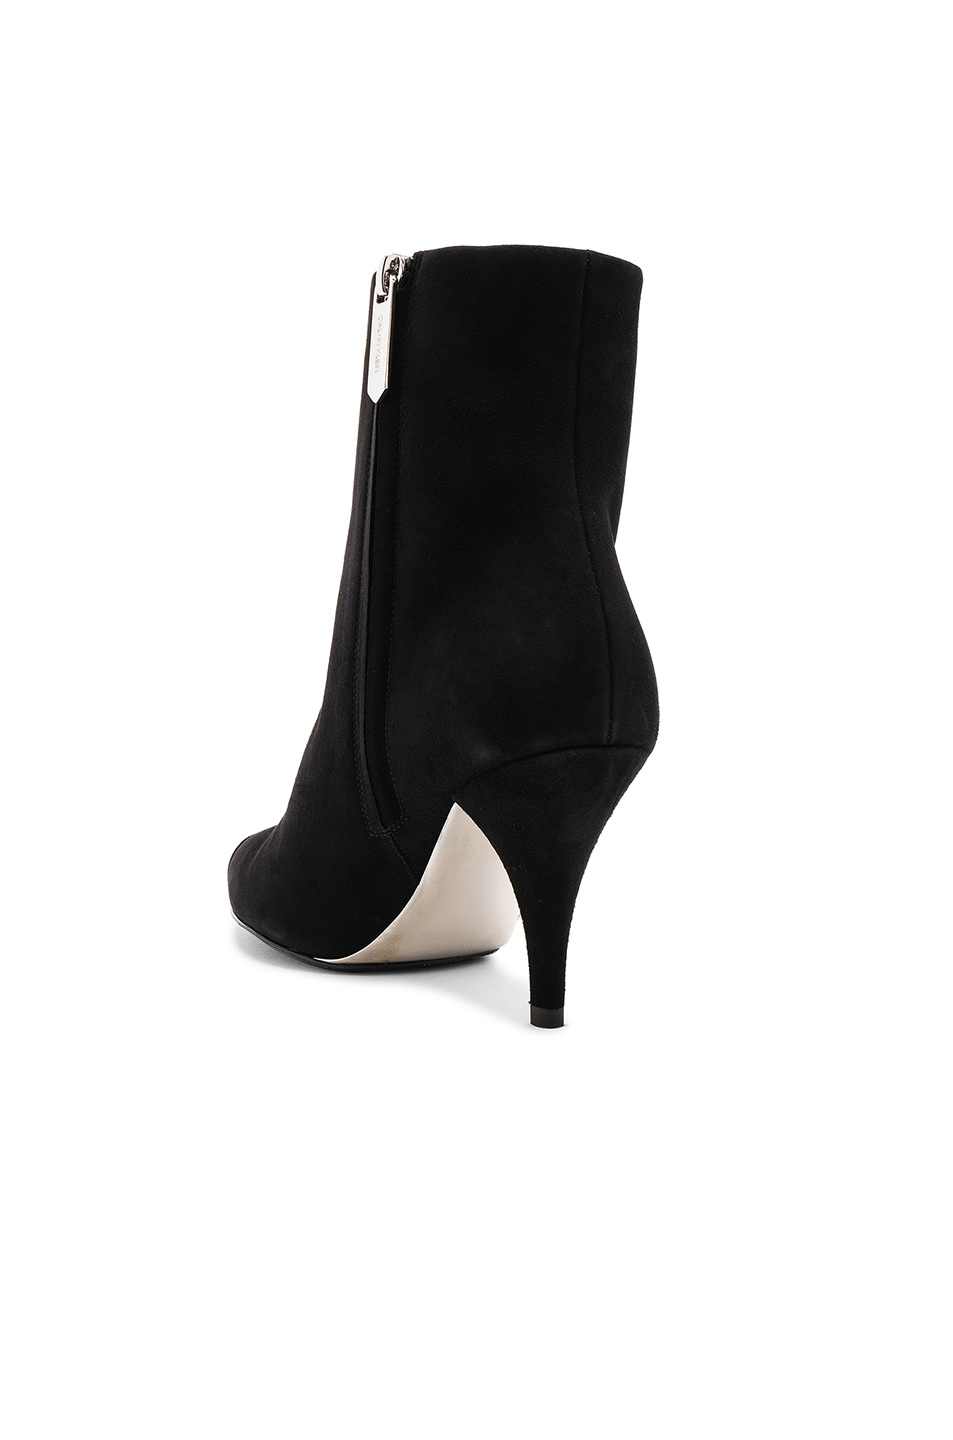 Image 3 of CALVIN KLEIN 205W39NYC Suede Rocio Stiletto Boots in Black